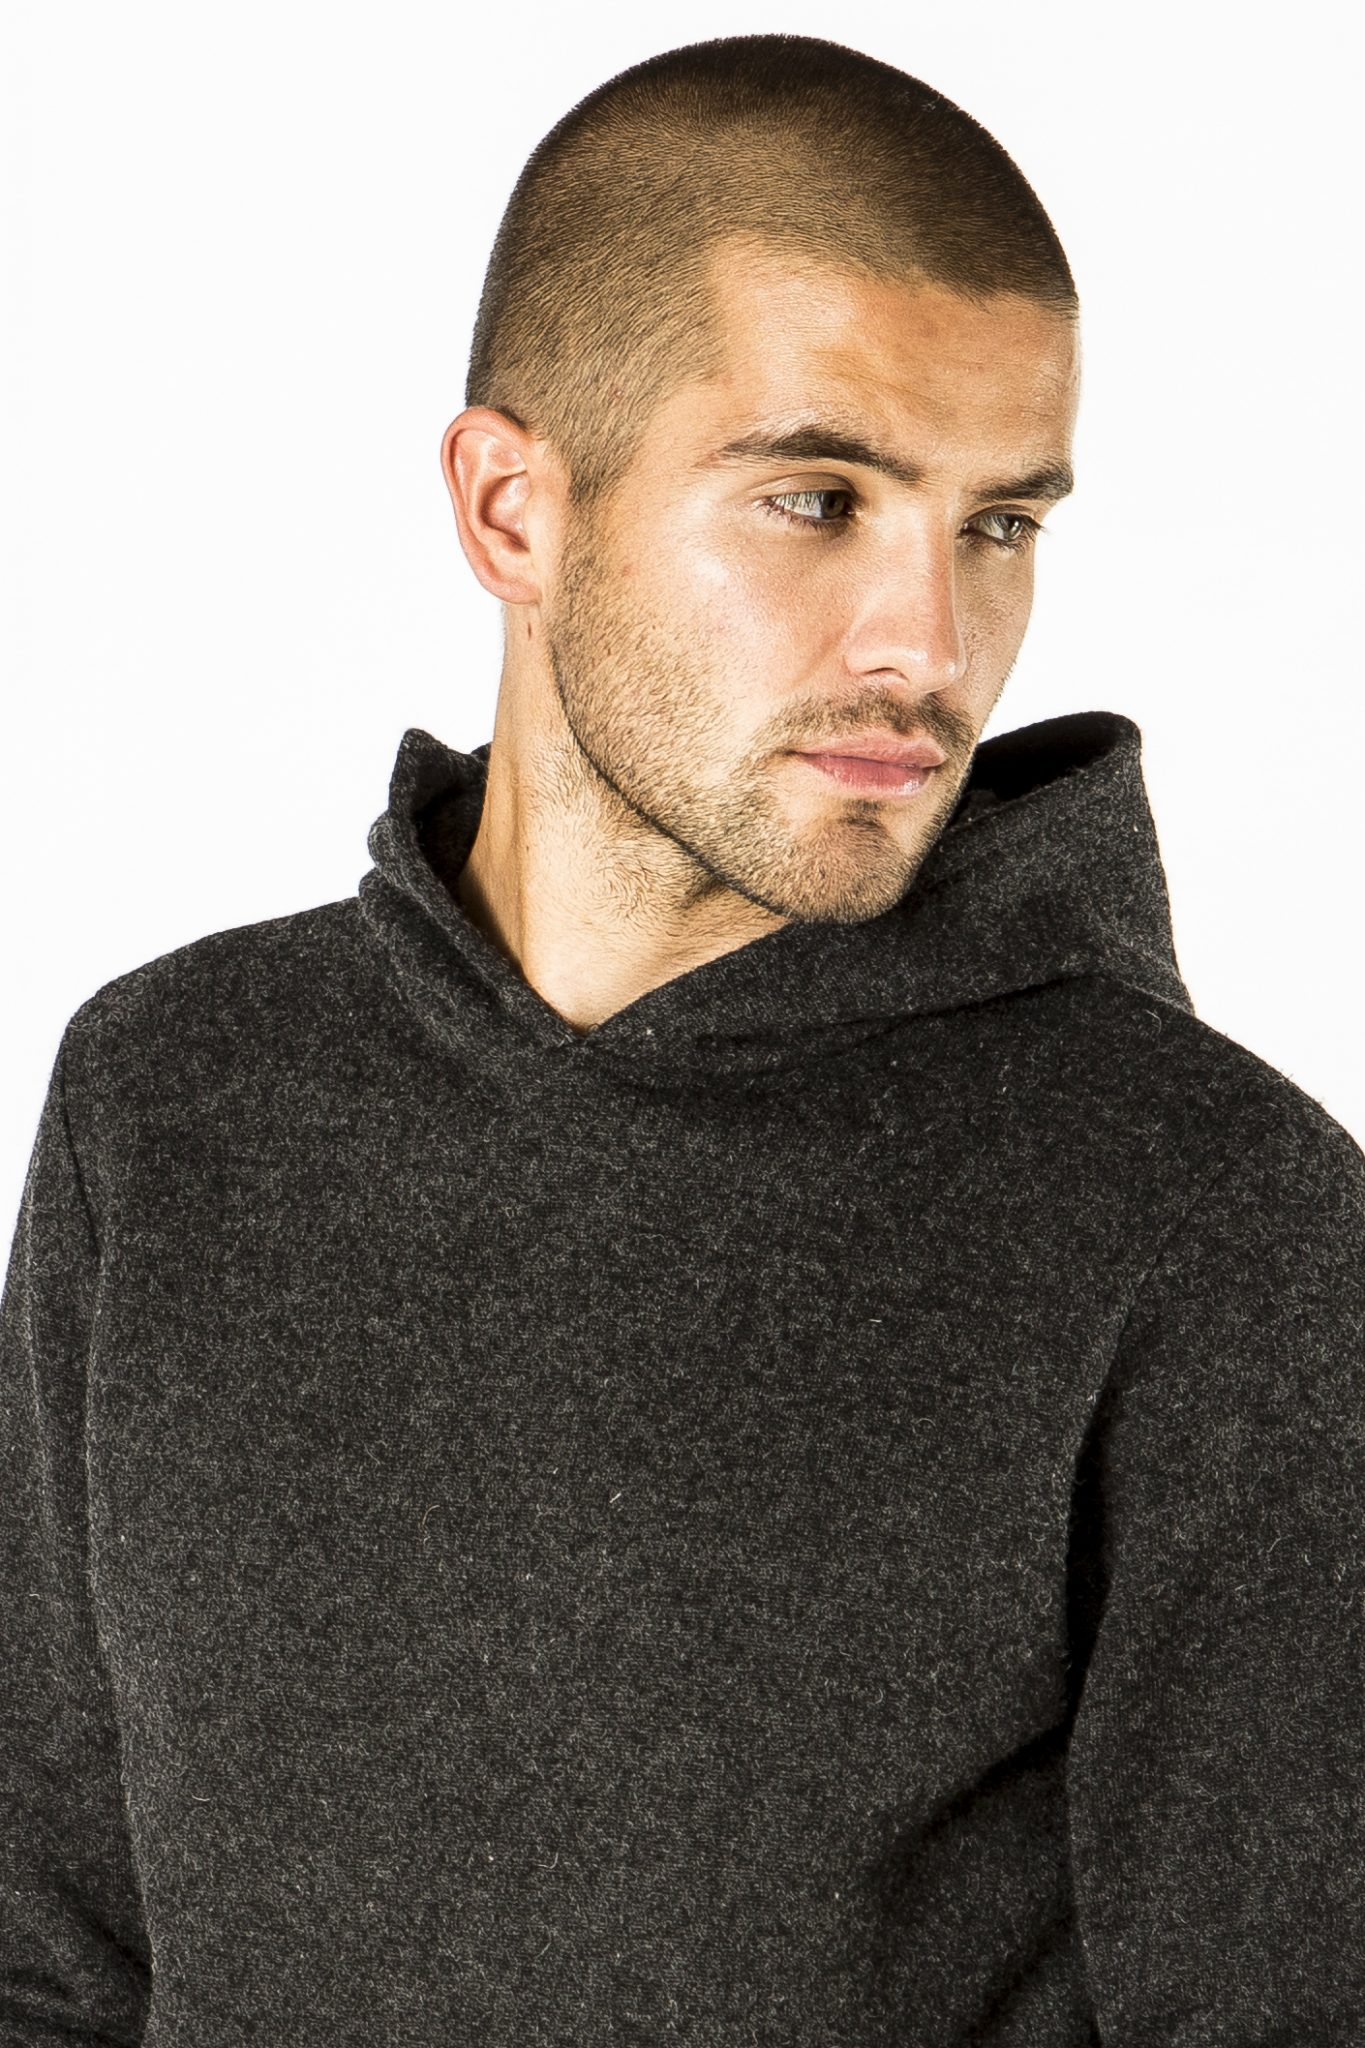 fashion and advertising photography for menswear